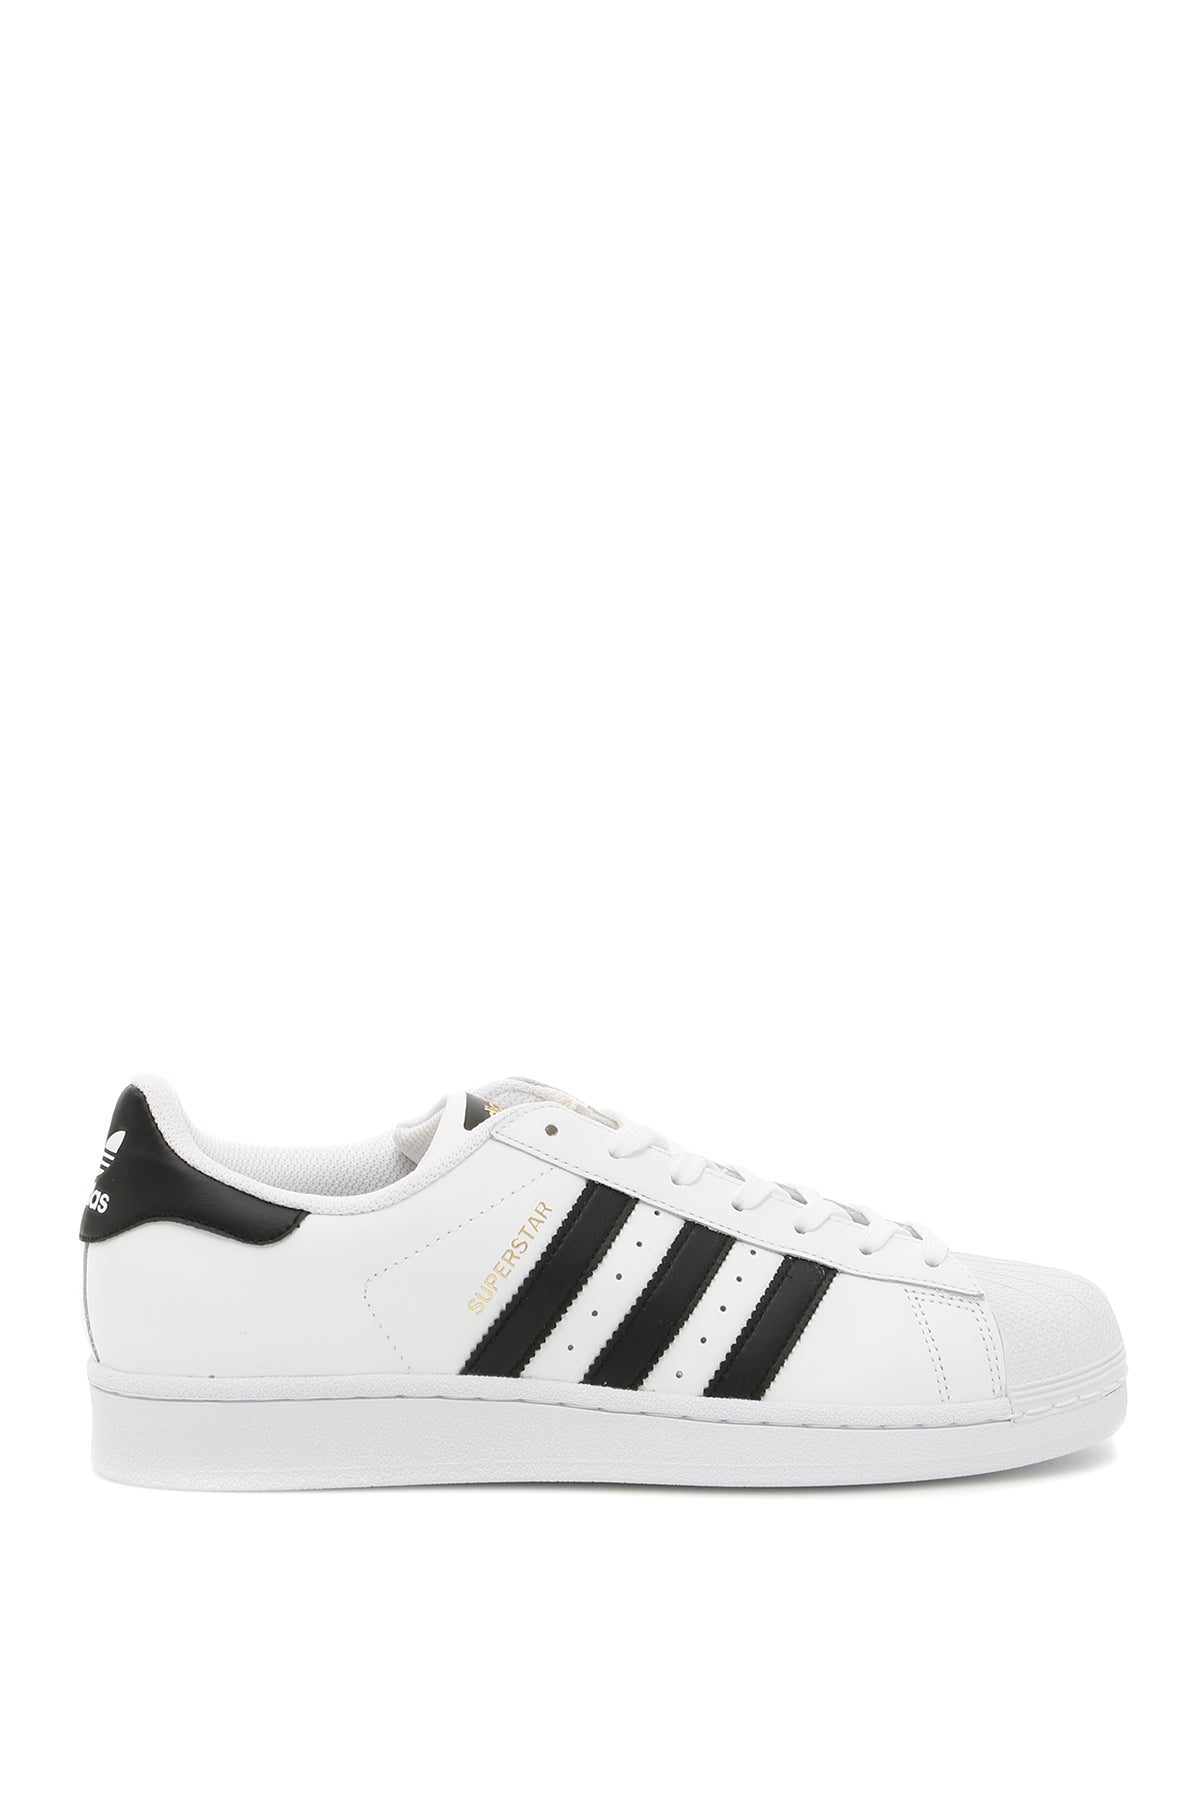 save off cef15 c0a66 ... ireland adidas originals adidas superstar sneakers in white 9fe99 d697e